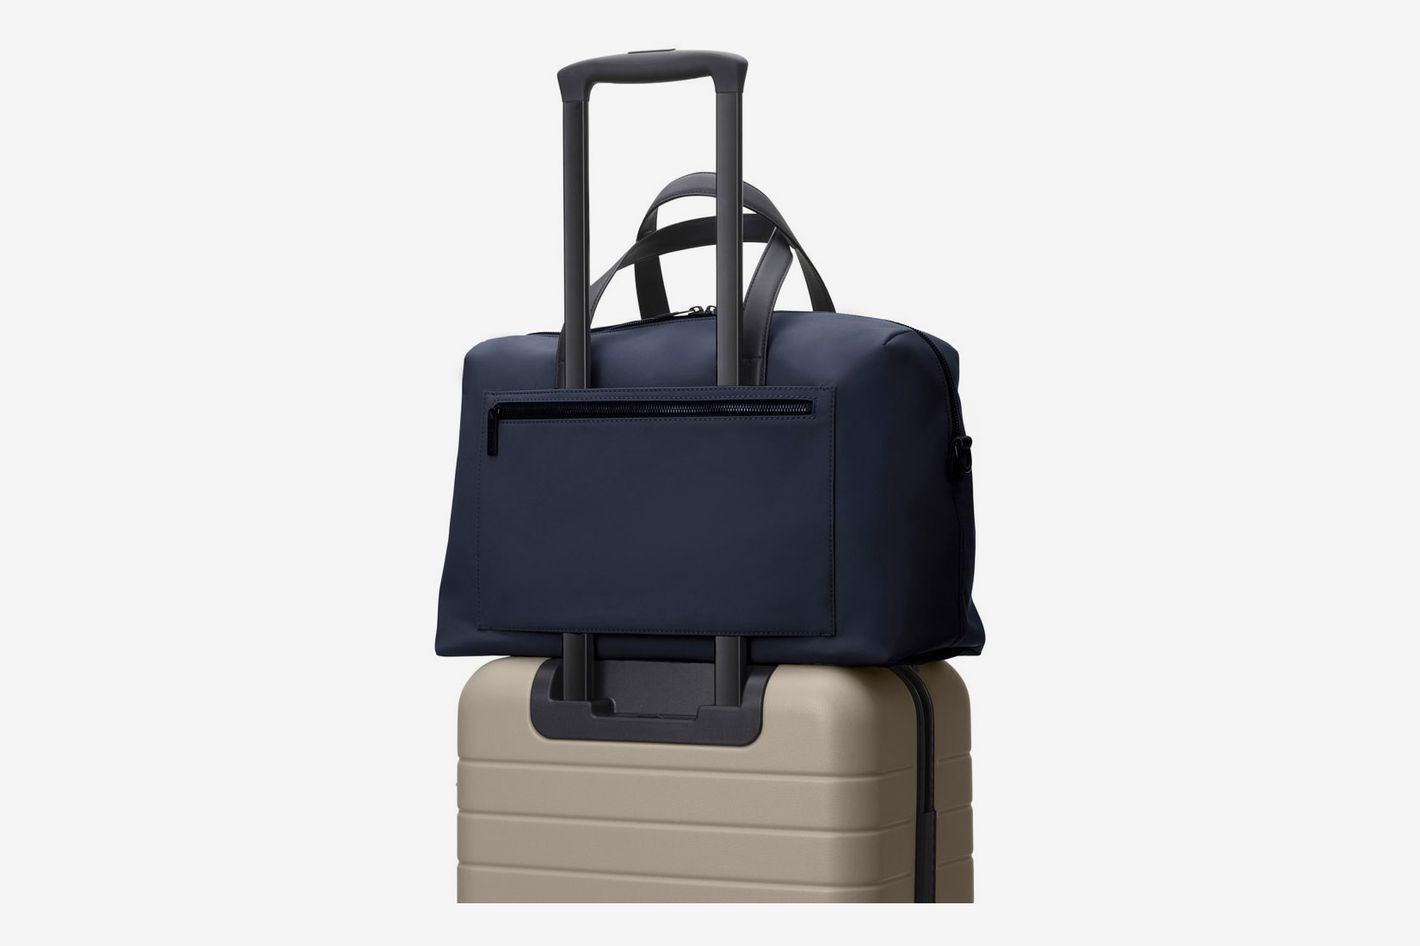 128cc5eded The 15 Best Personal Item Carry-on Bags for Travel 2019